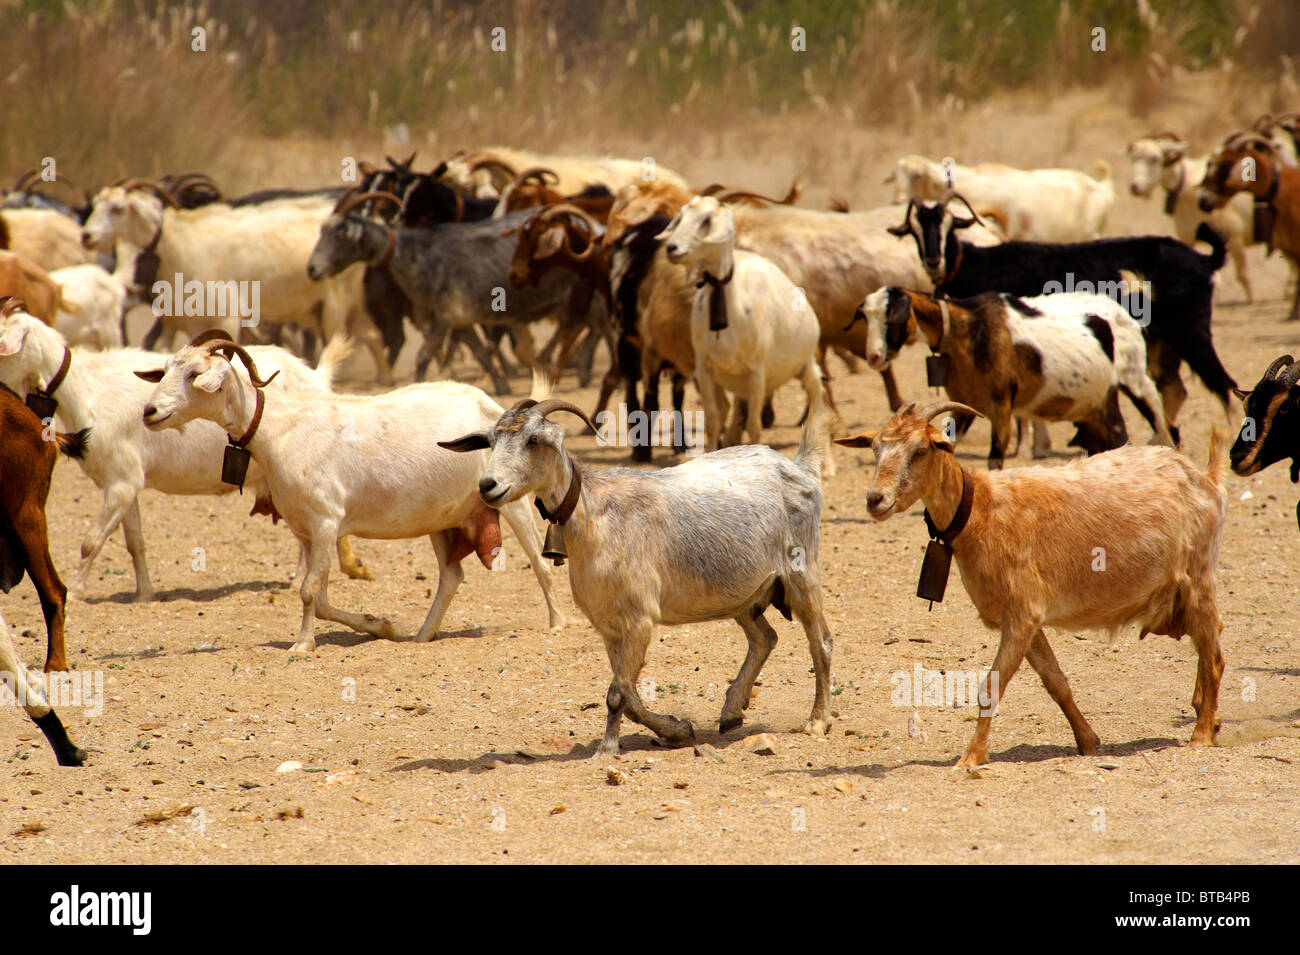 Goat herd on Ios, Cyclades Islands, Greece - Stock Image